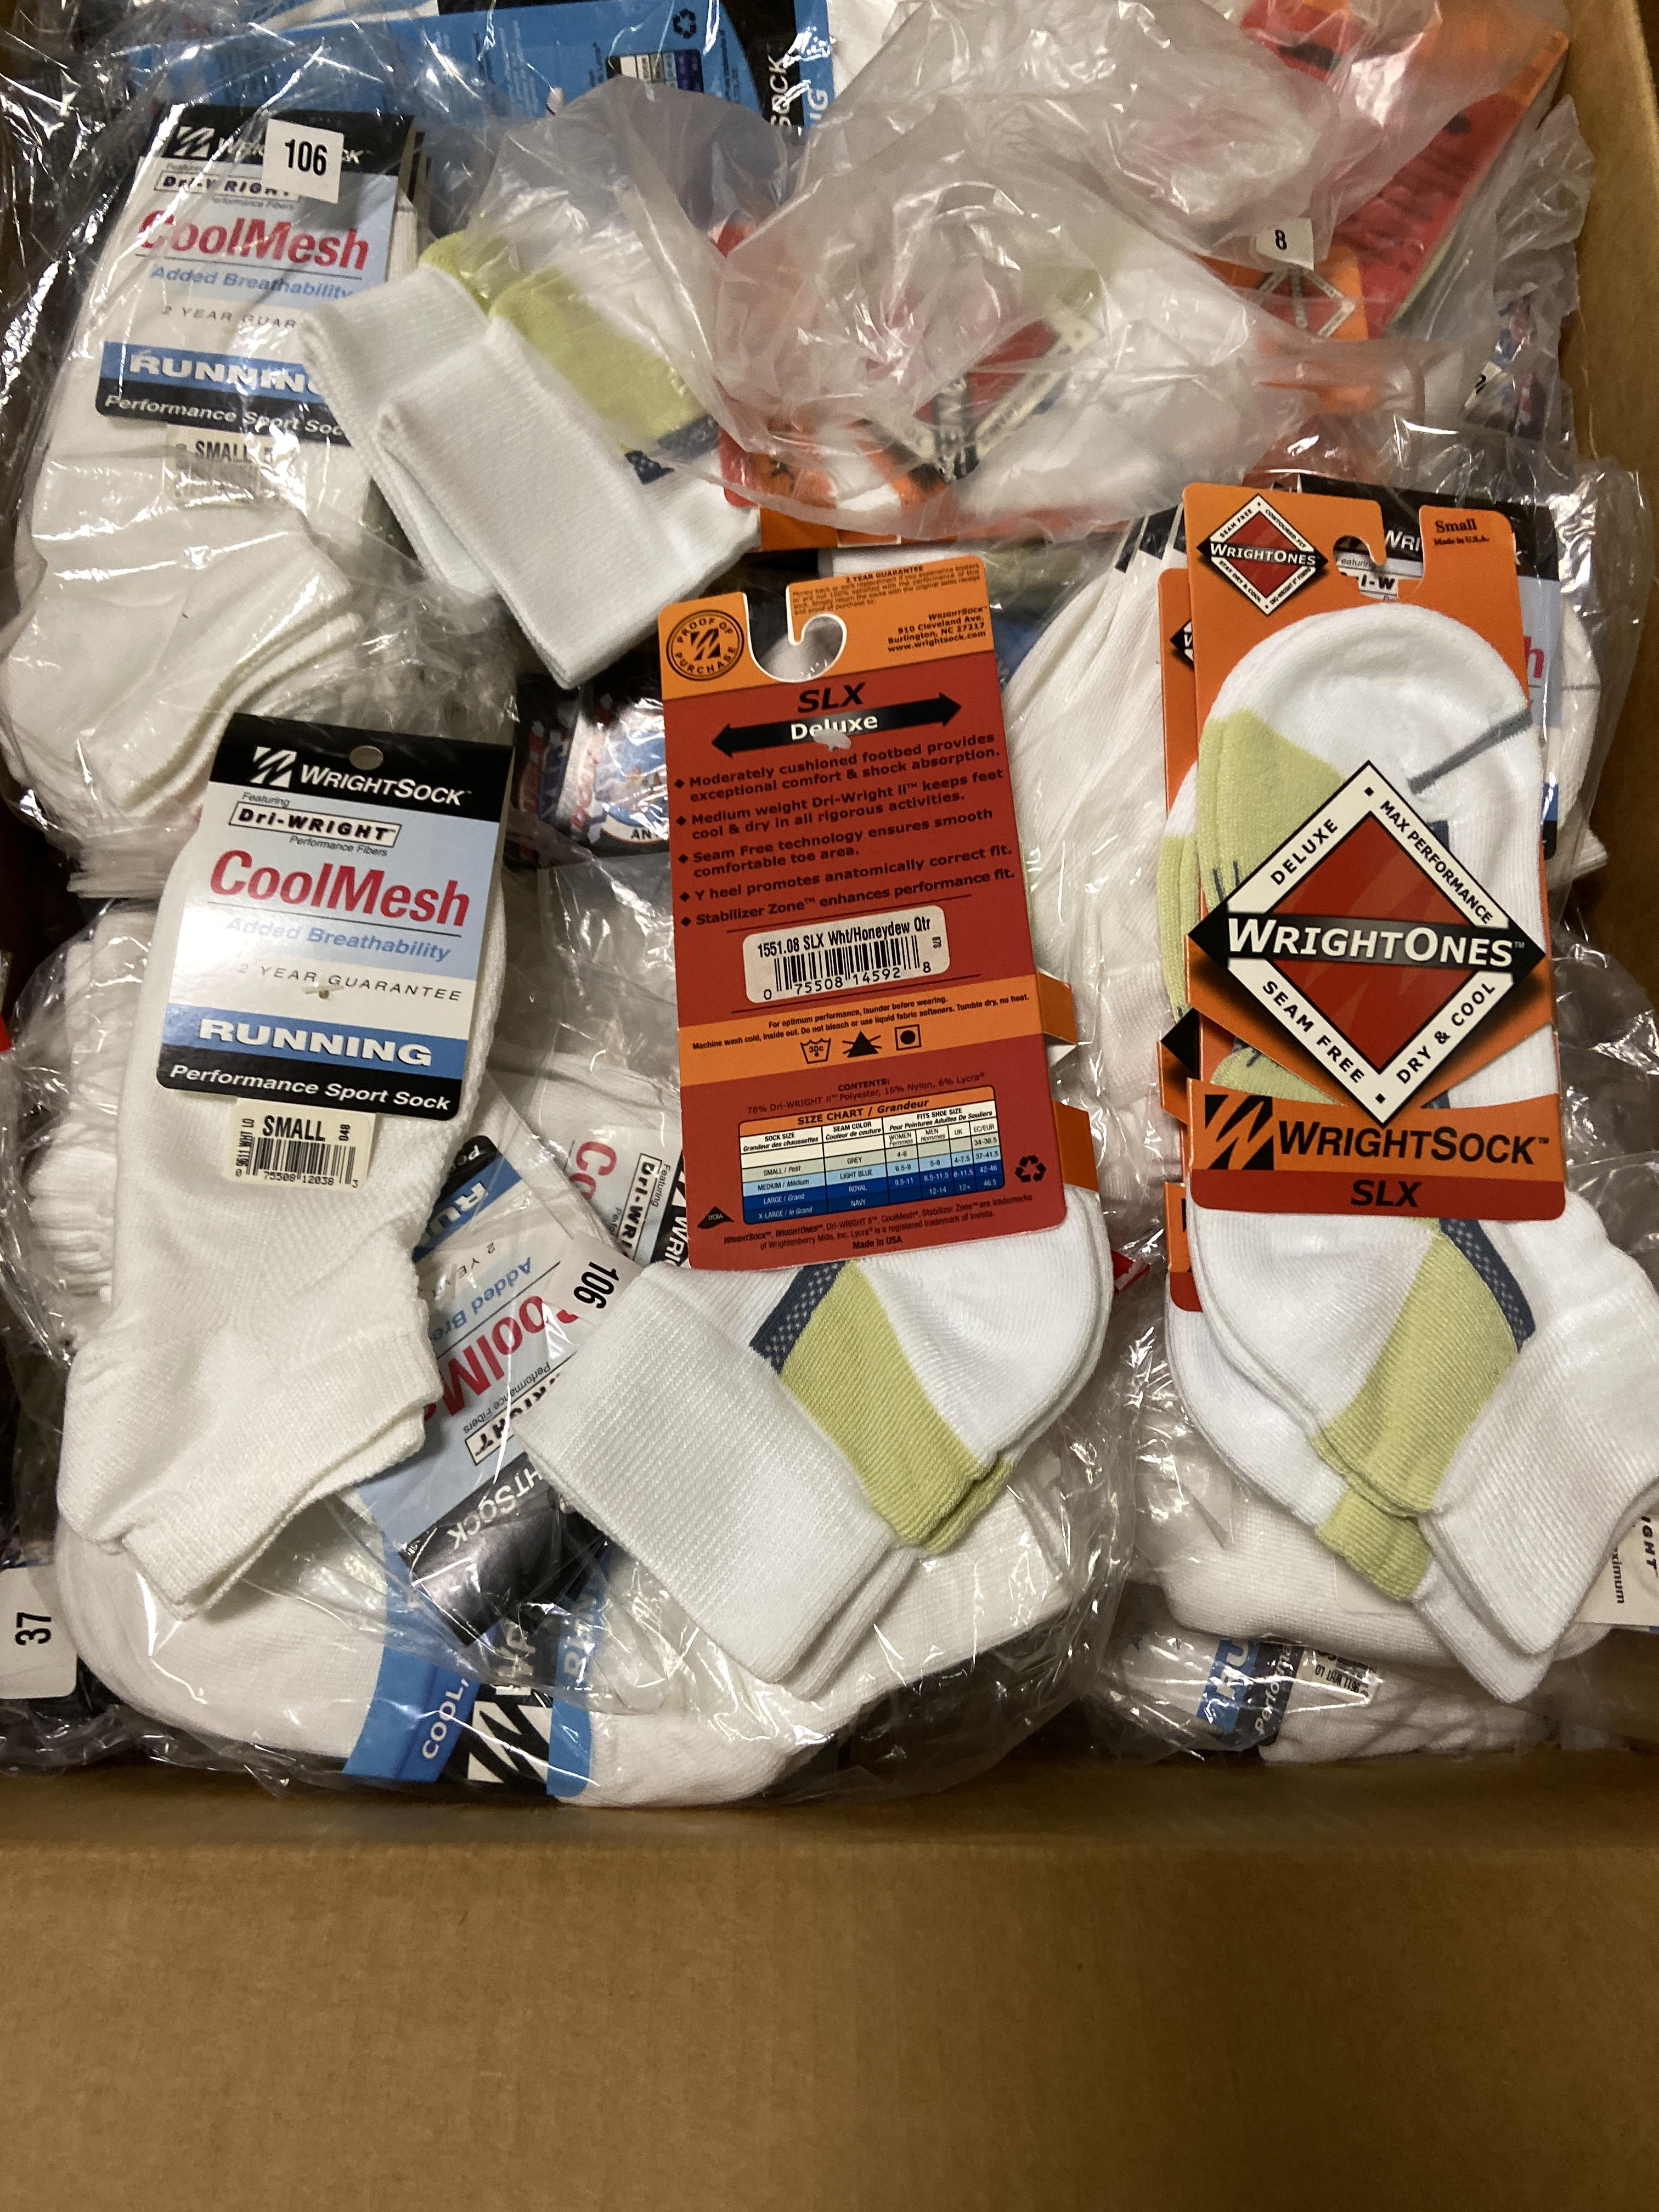 Lot 28 - 500+ packs of New Socks, Wrightsocks Various Styles, Various Colors and Styles Lot includes